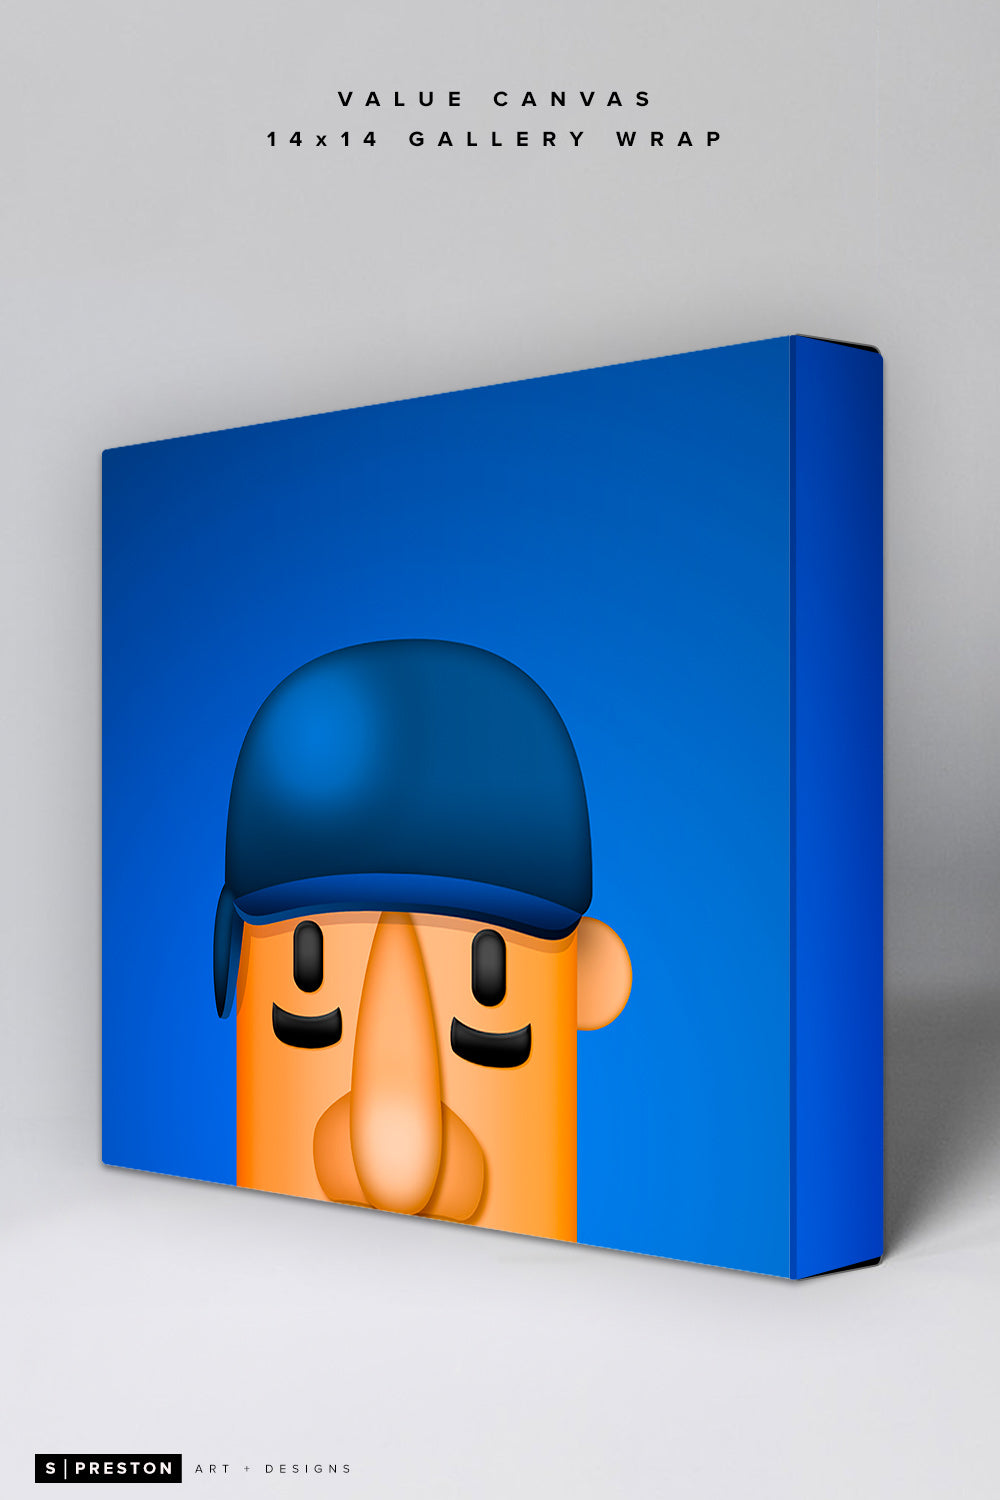 Minimalist Racing Sausage Hot Dog Value Canvas